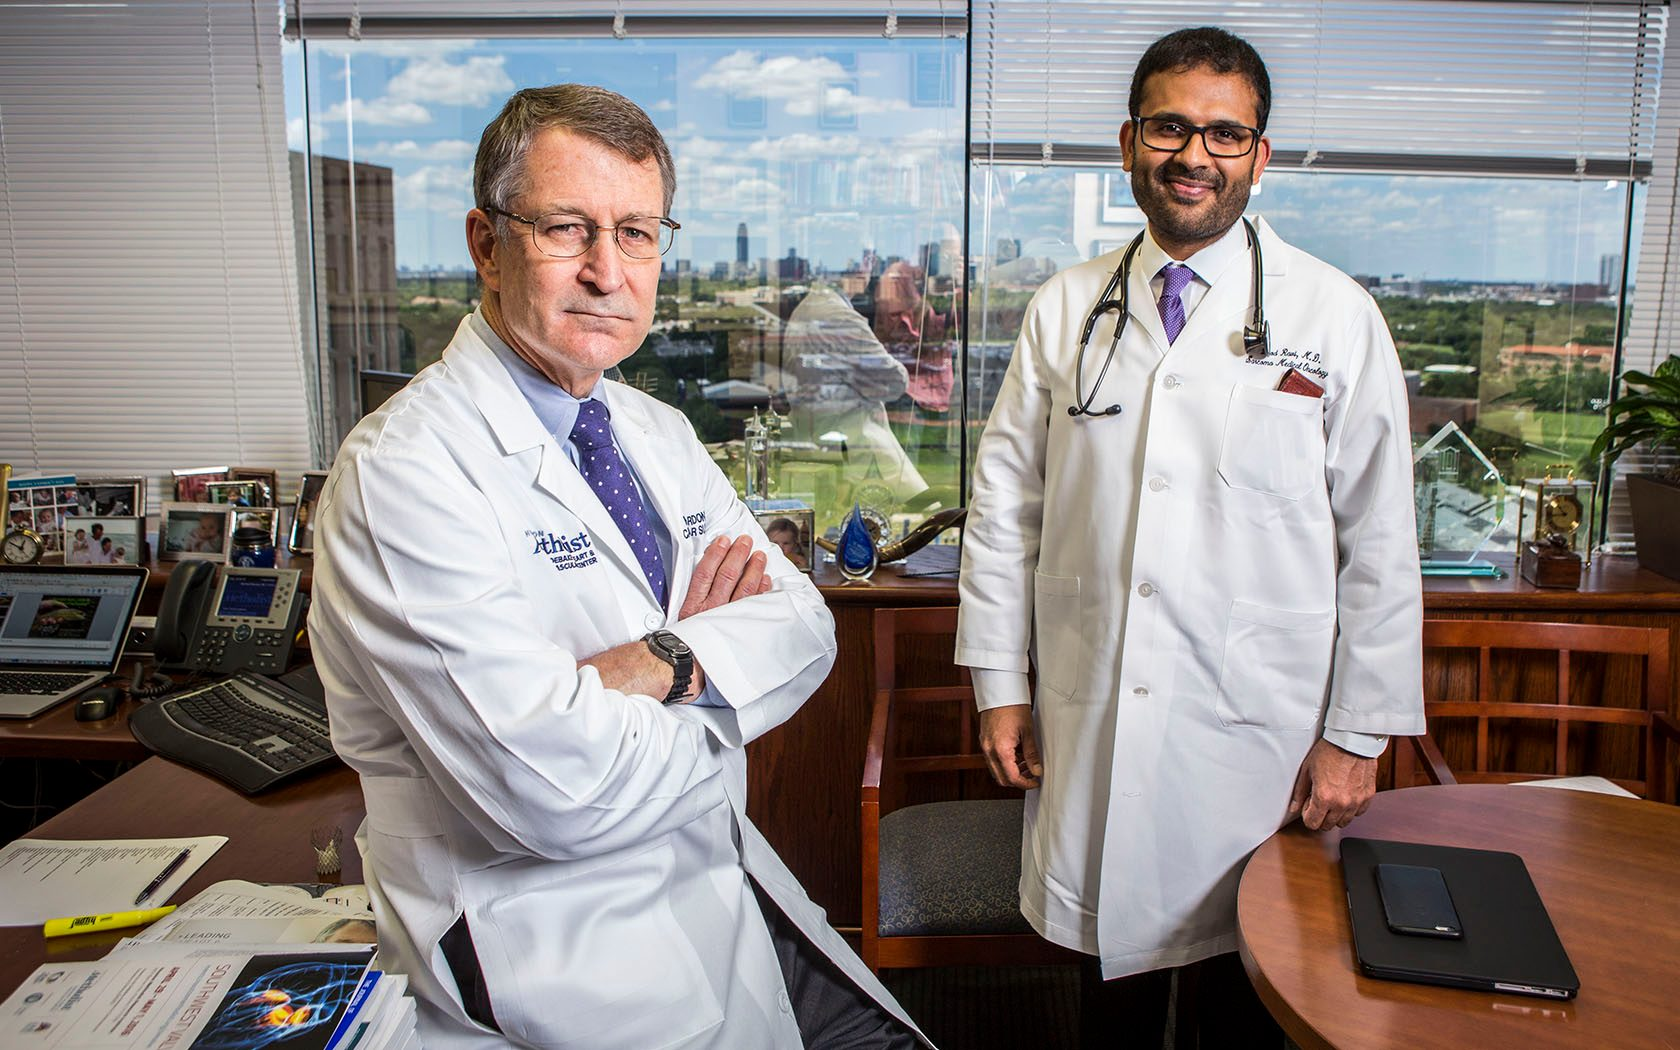 Michael Reardon, M.D., and Vinod Ravi, M.D.